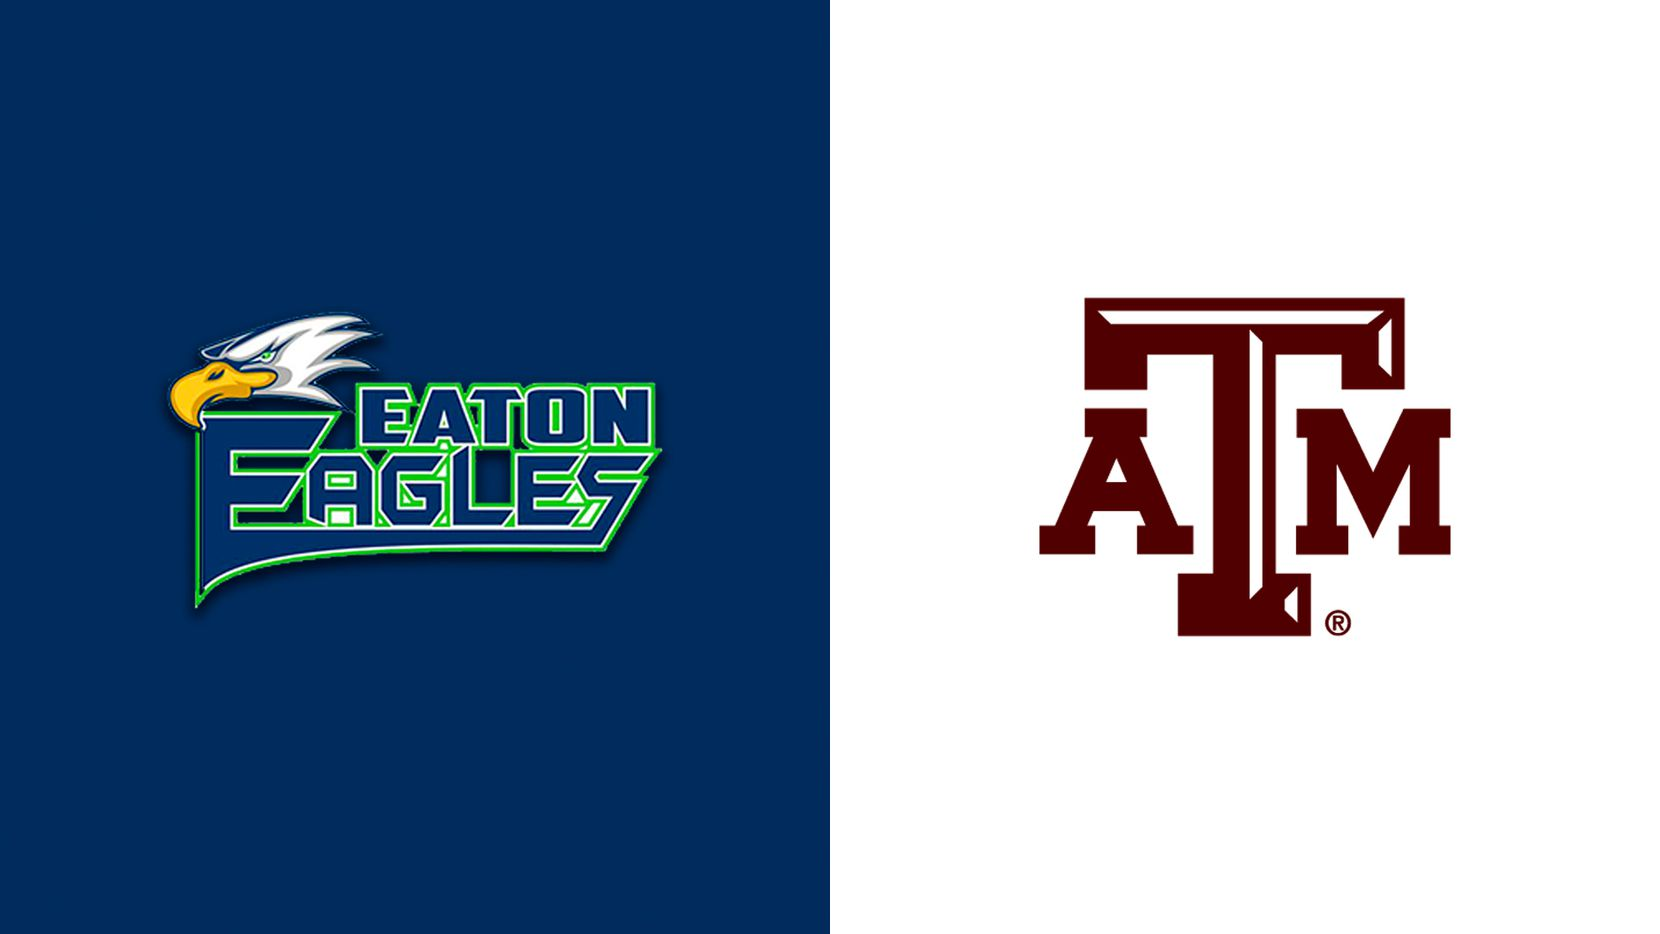 Logos for Northwest Eaton and Texas A&M.